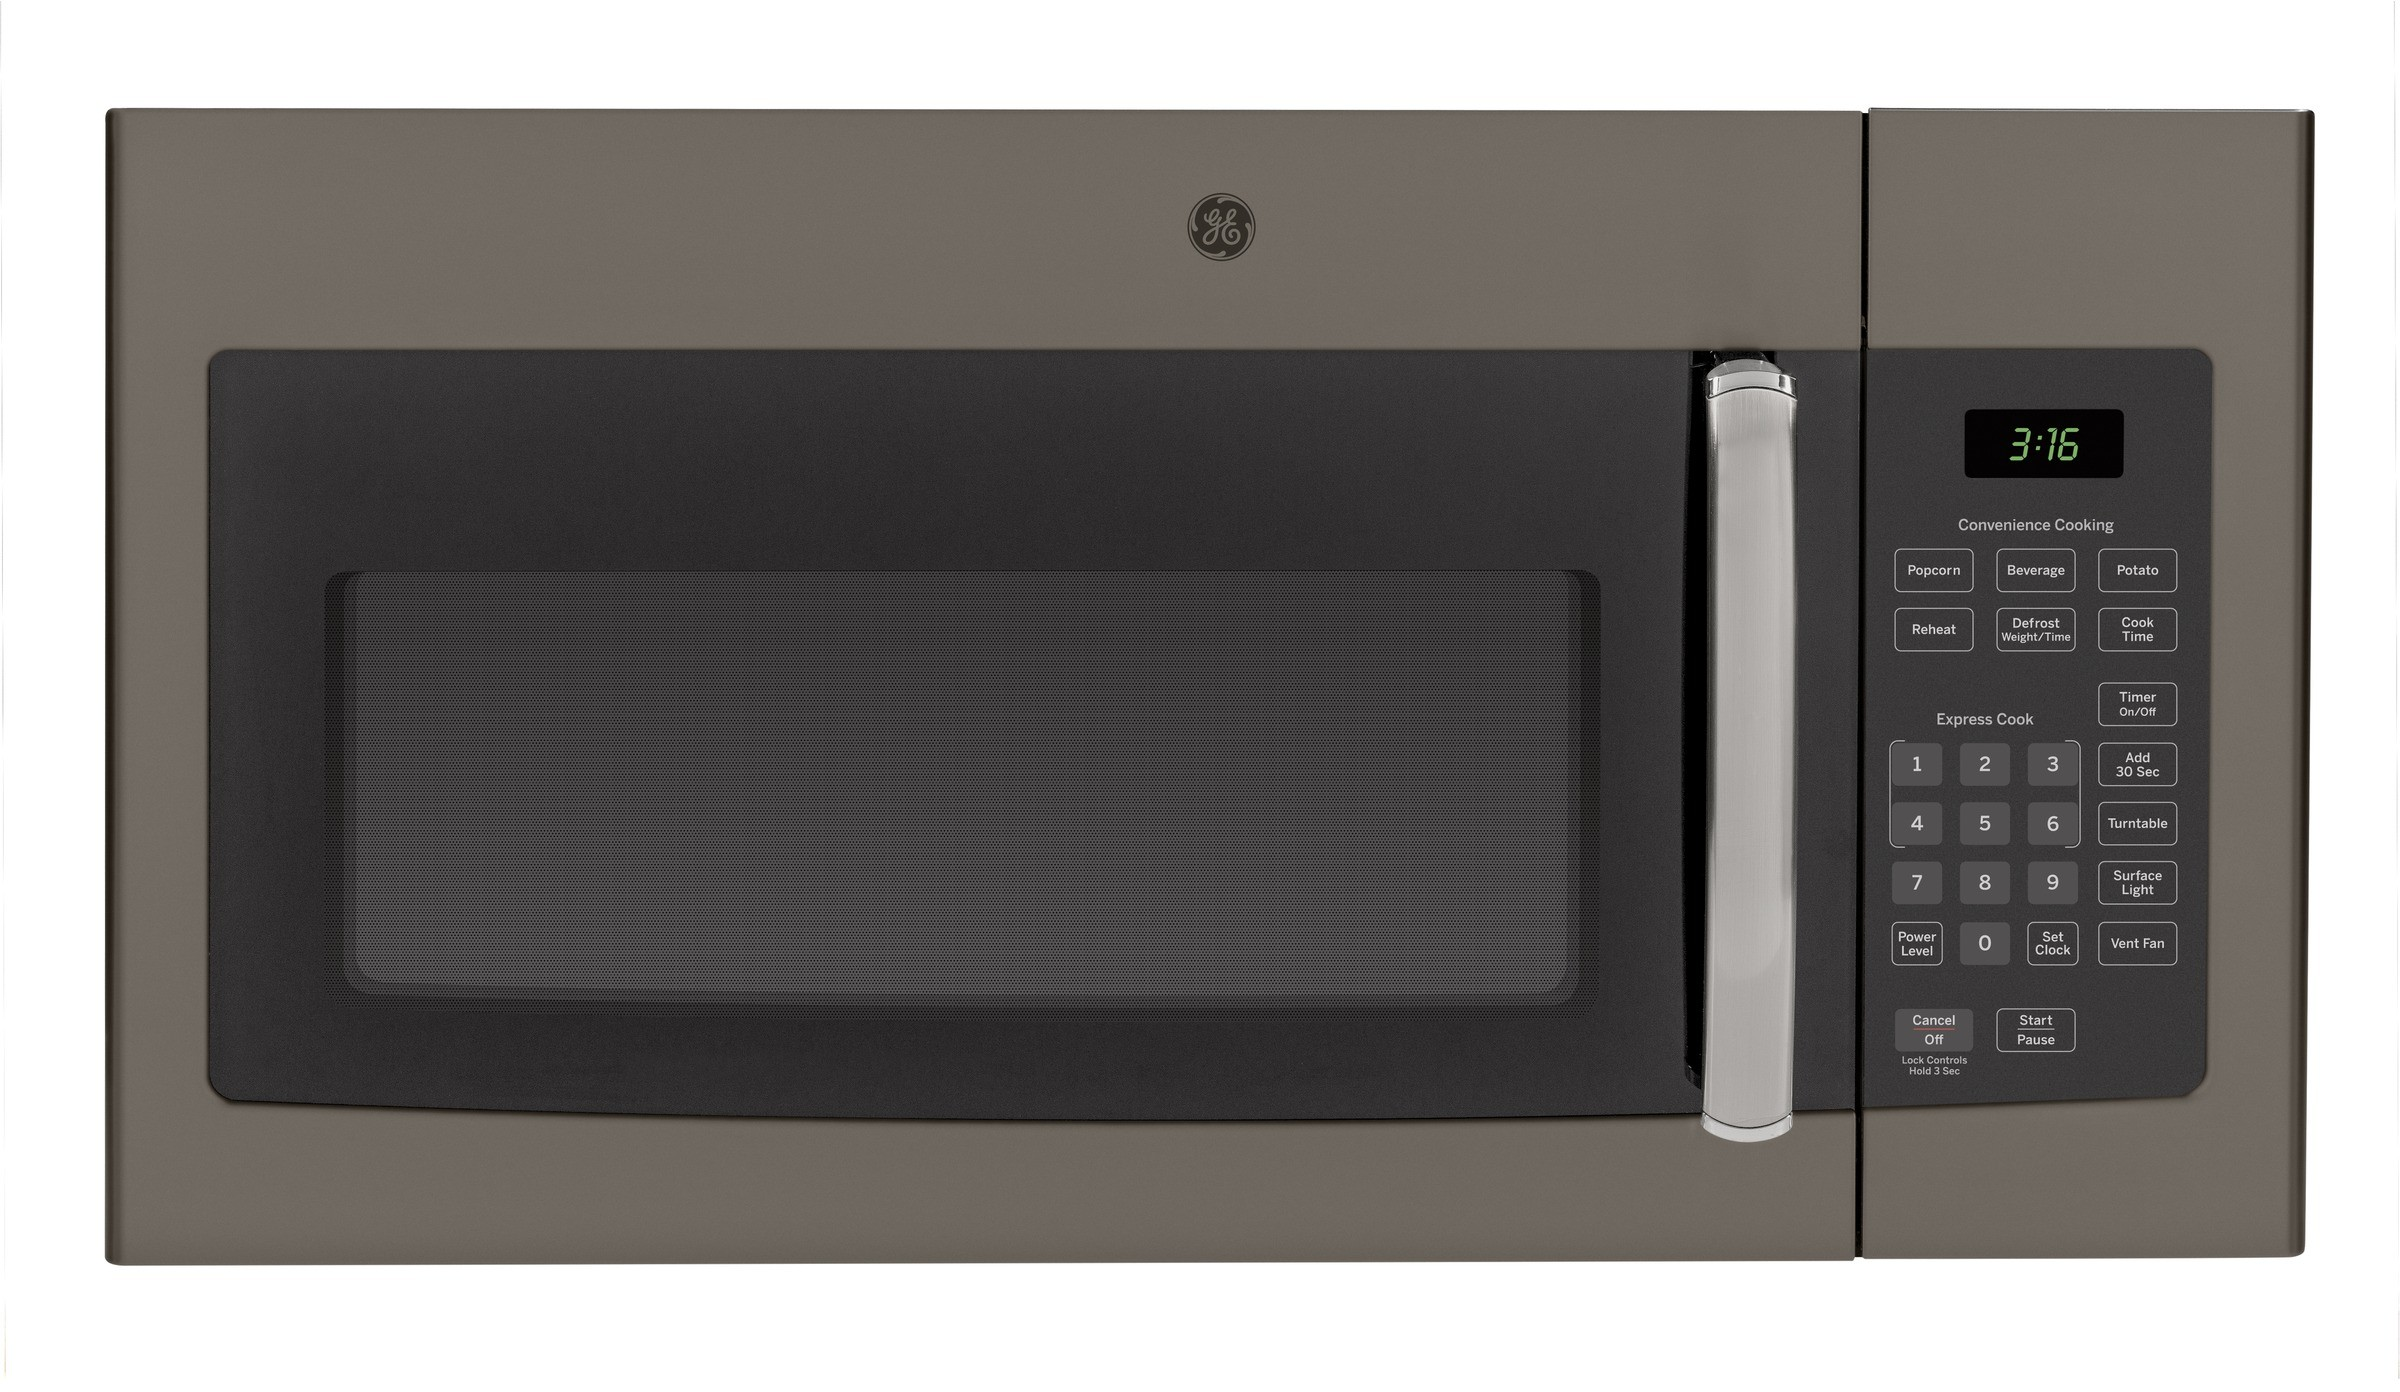 Ge Jvm3160efes 30 Inch Over The Range Microwave Oven With